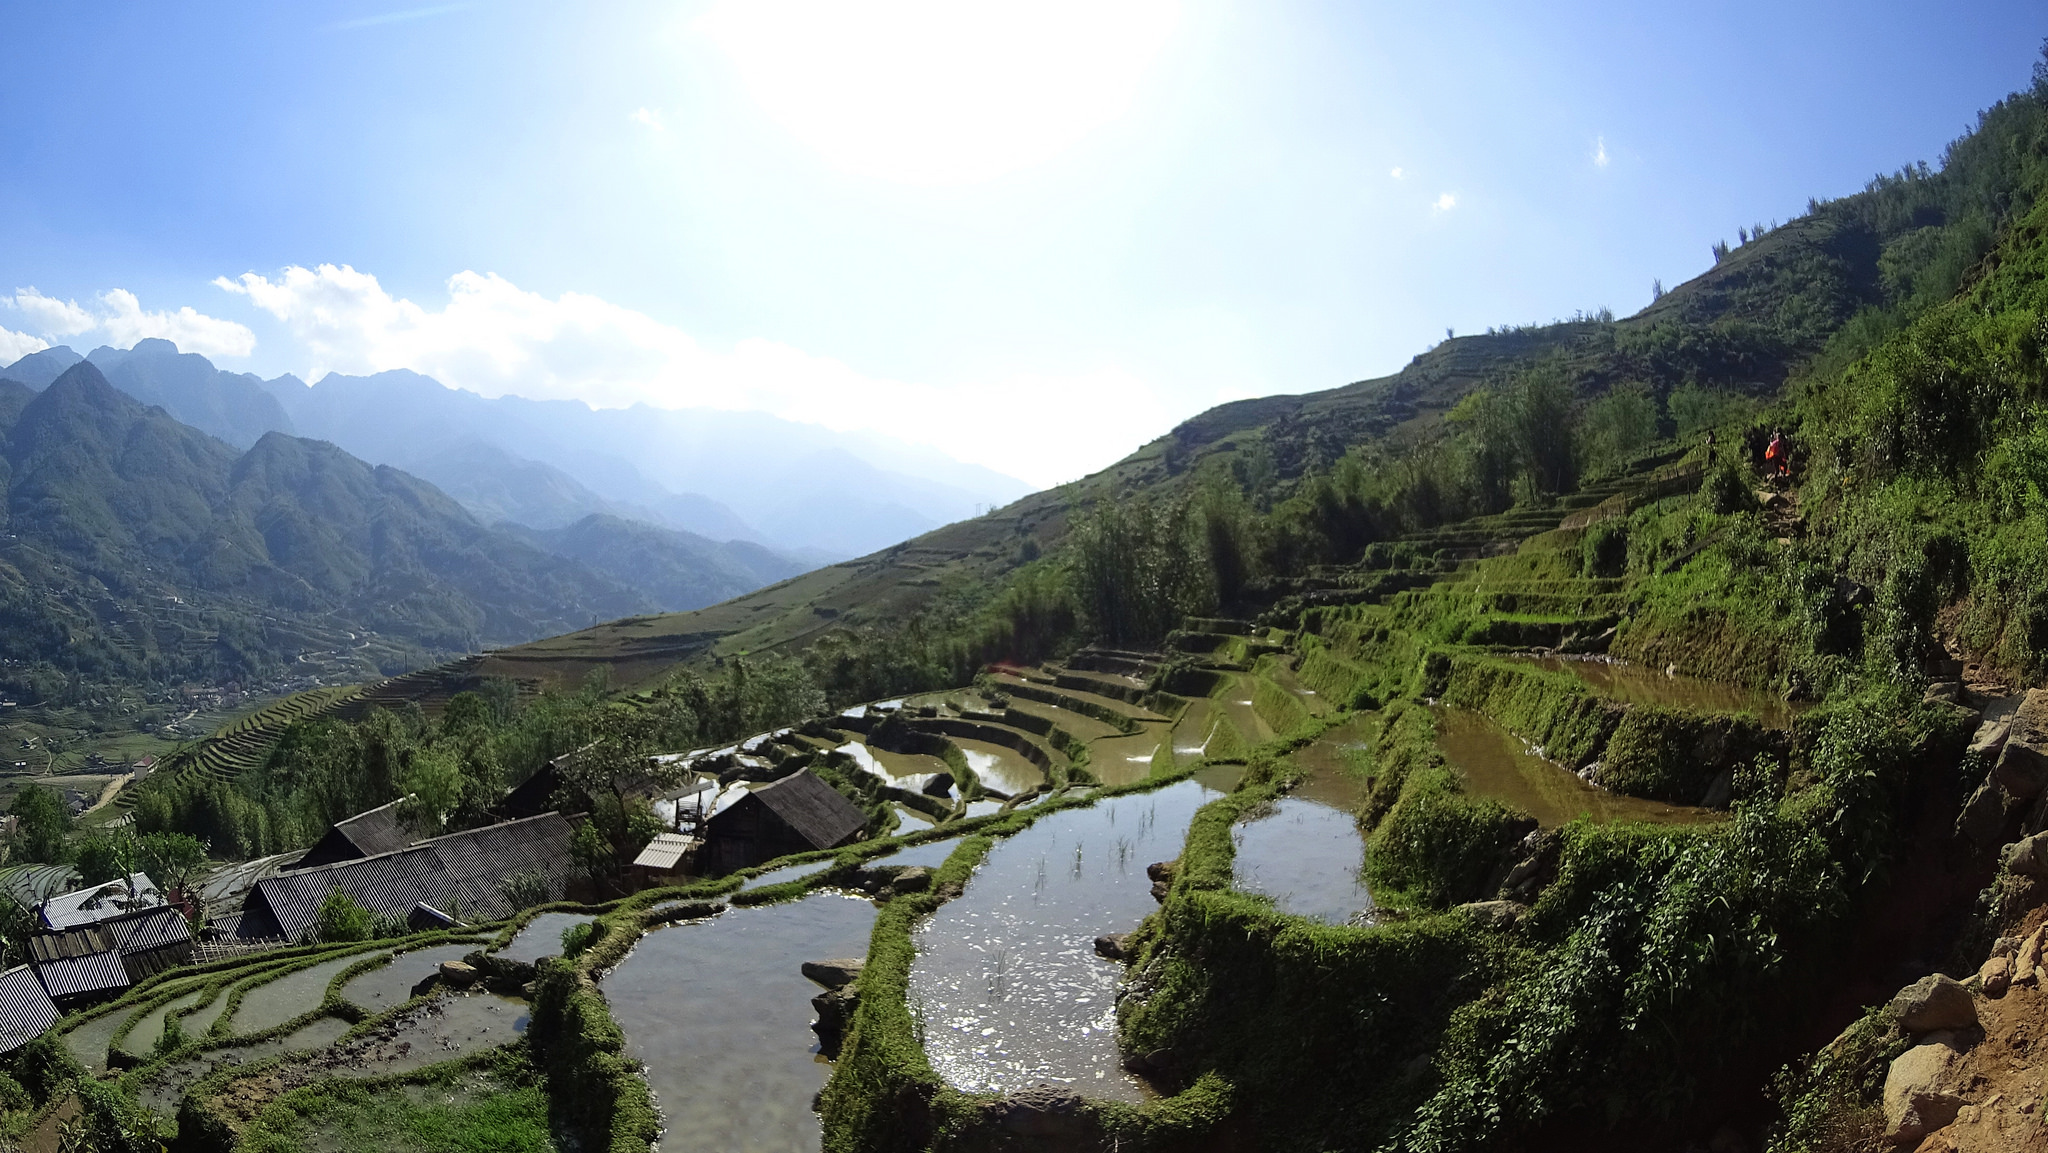 Rice paddies at Sapa